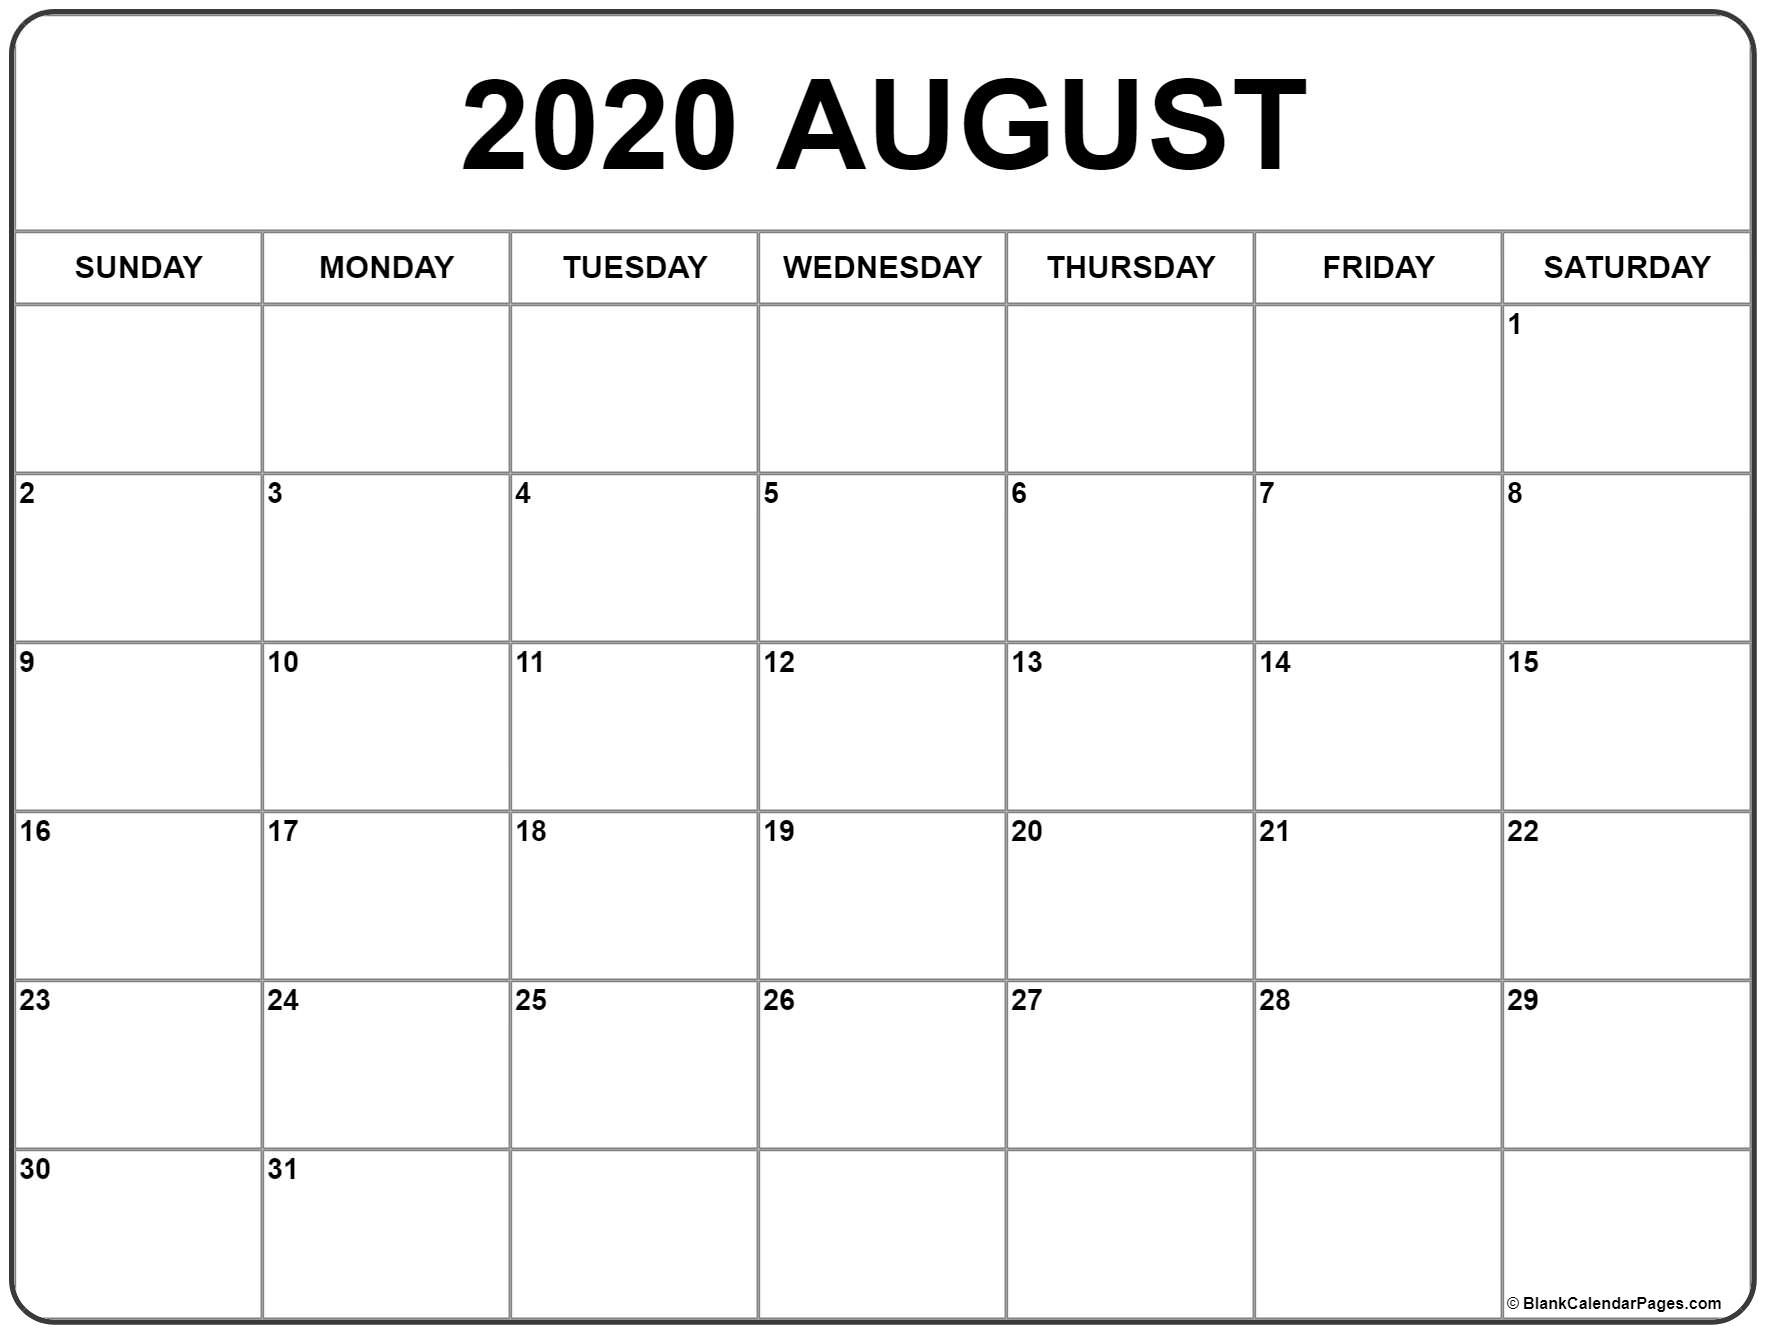 August 2020 Calendar | Free Printable Monthly Calendars-June-August 2020 Blank Clanedars